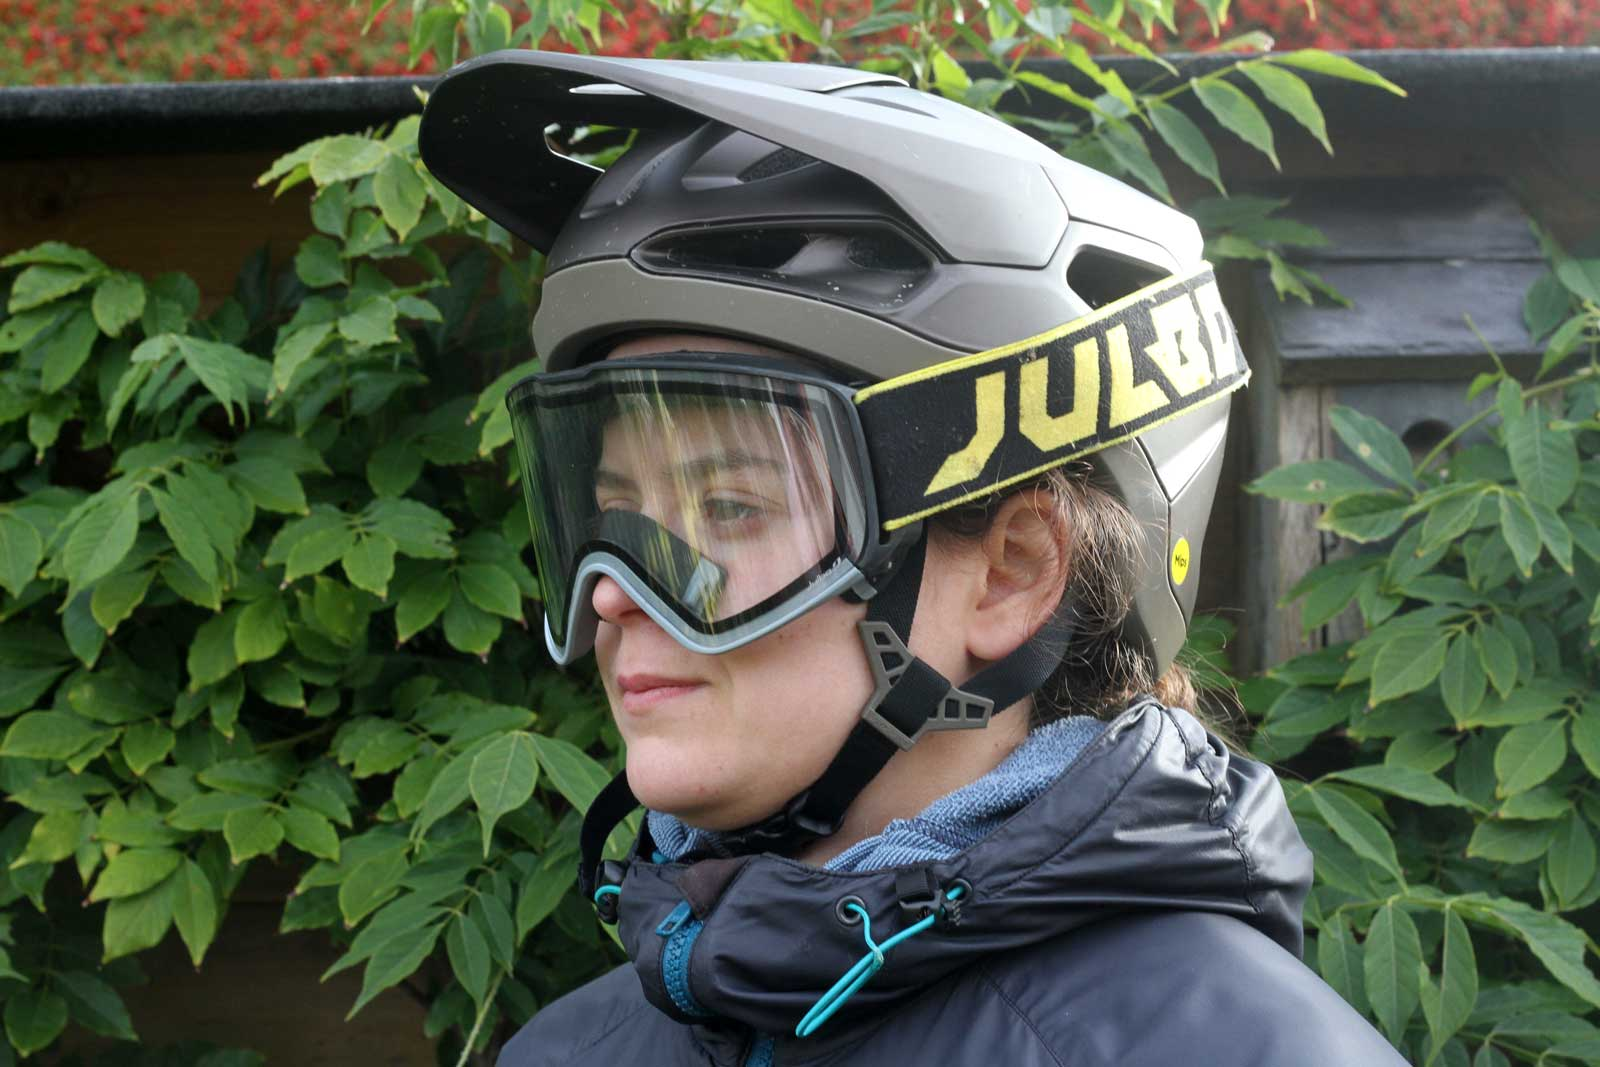 specialized tactic 4 helmet review julbo goggles on face